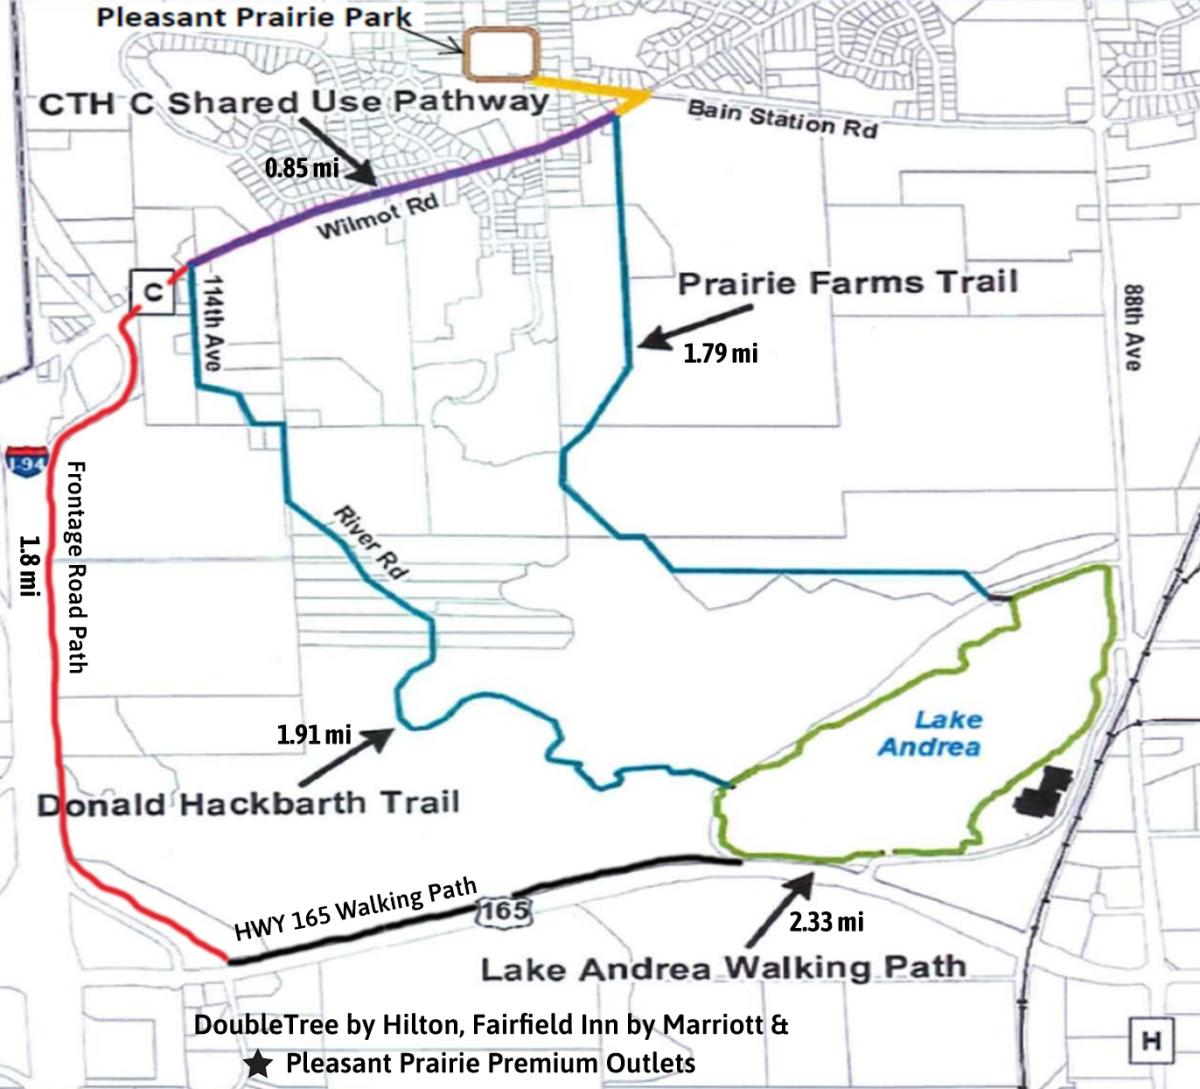 Lake Andrea area trails map w/mileage